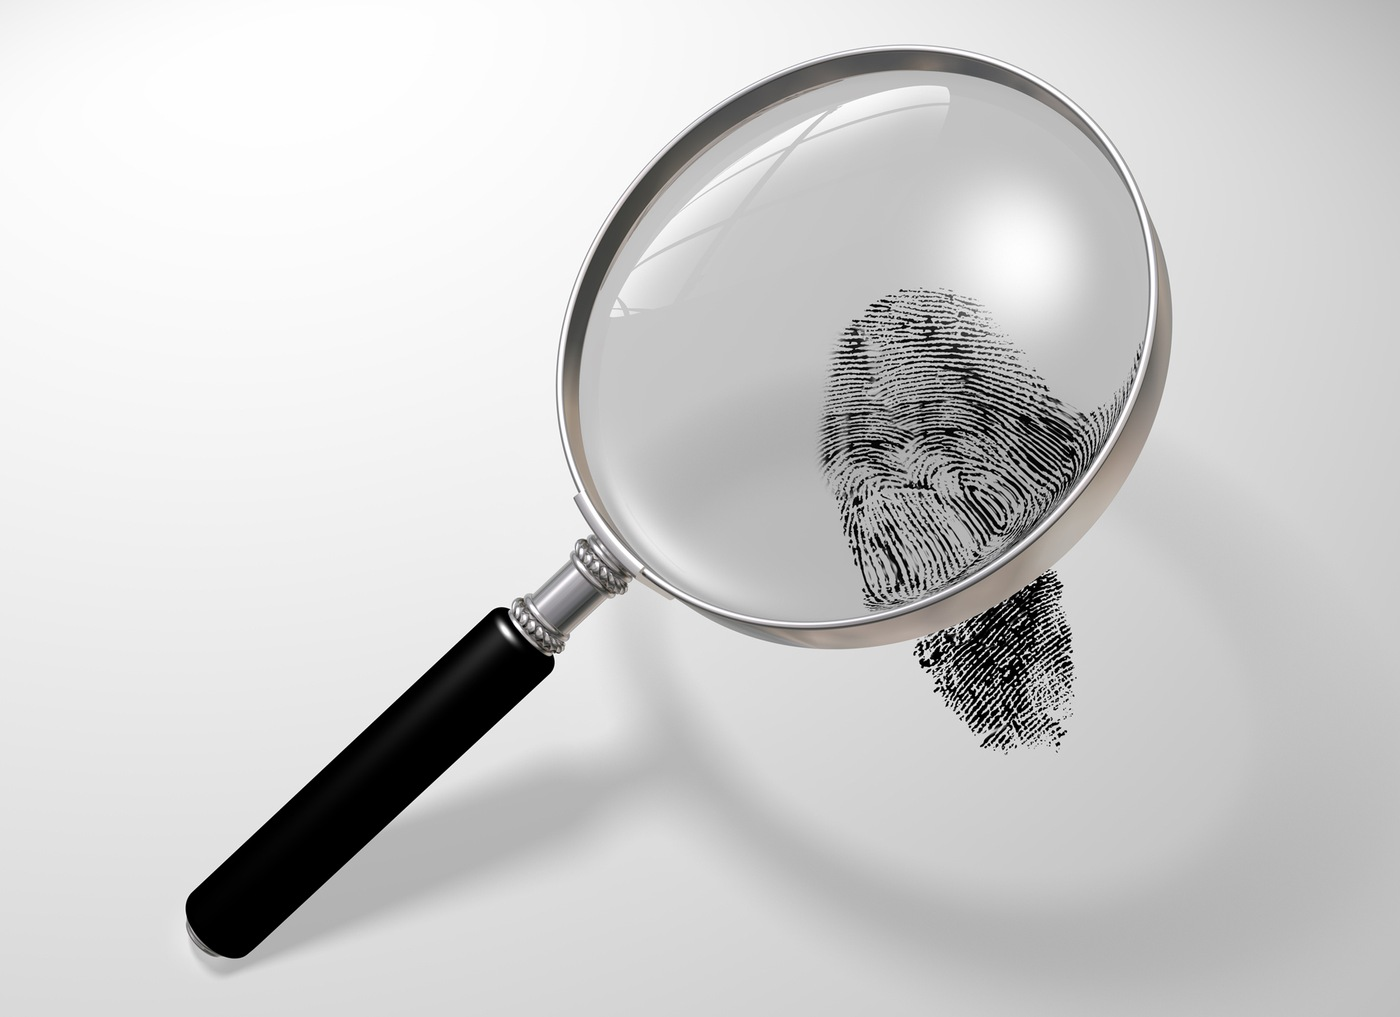 Stock image depicting a fingerprint under a magnifying glass (CJIS Link article)